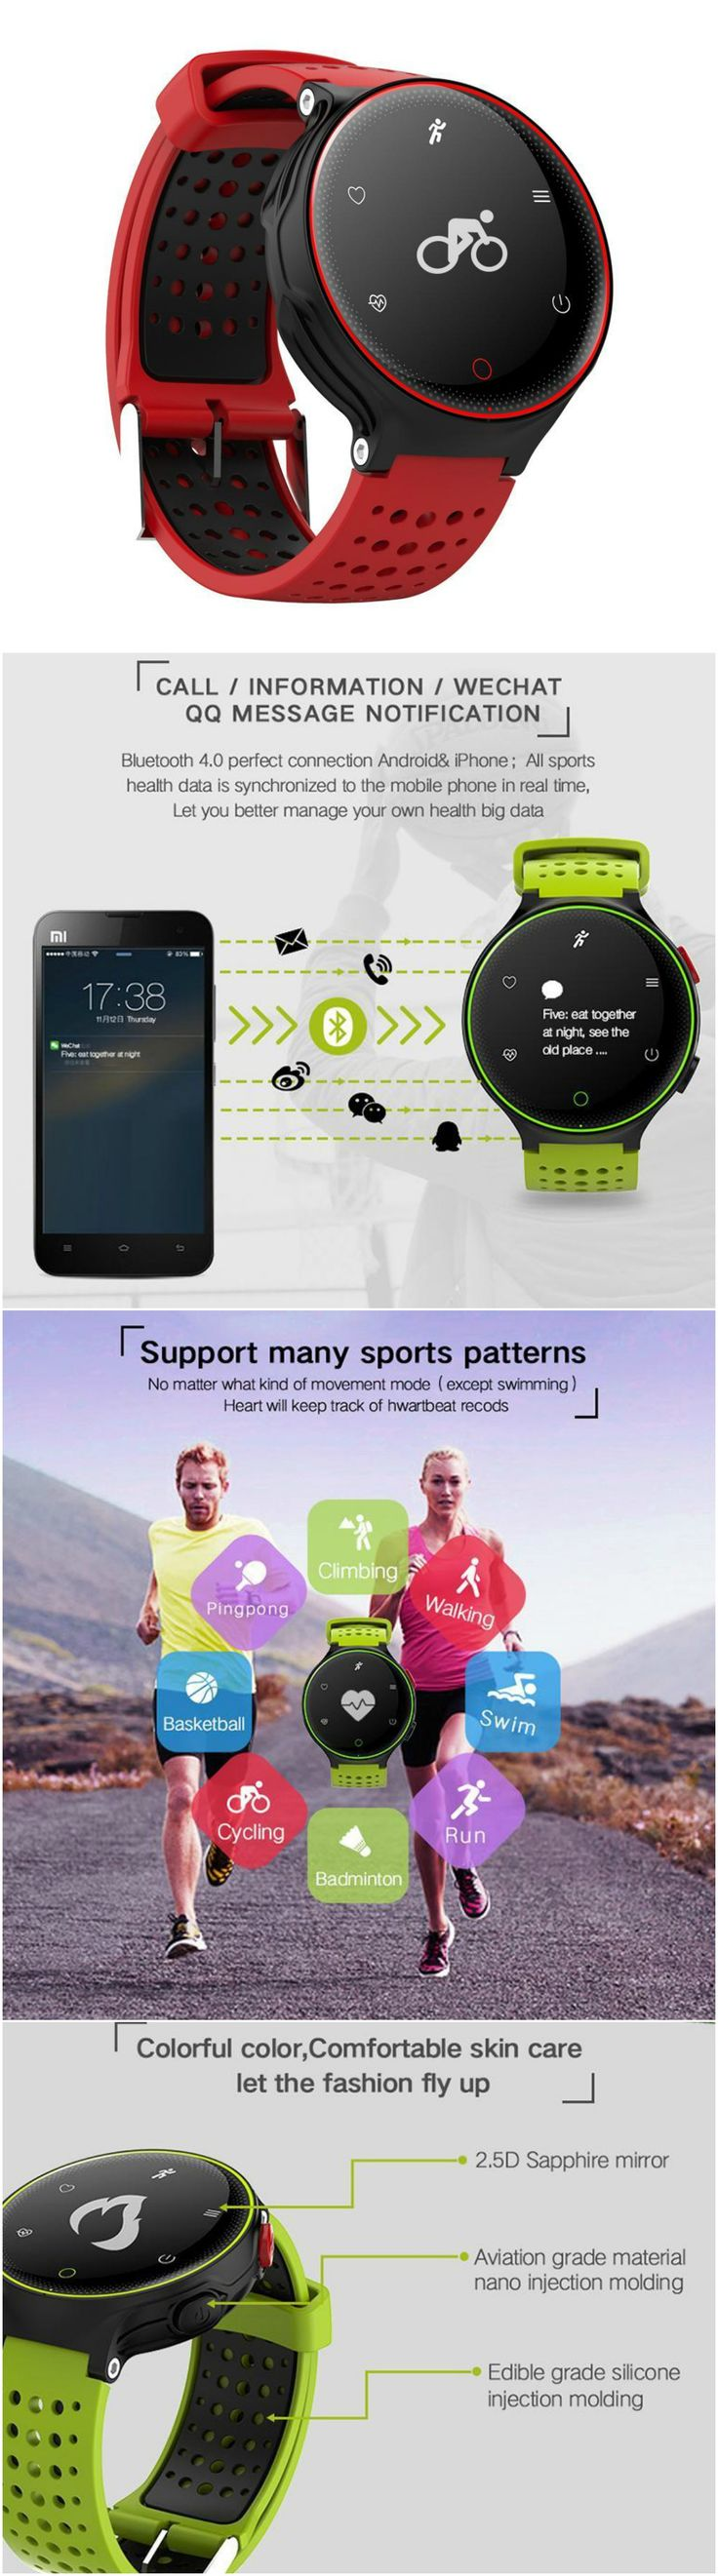 New Fitness Wristband Smart Band - compatible with Android, IOS via Bluetooth. Alarm clock, message and call reminders - perfect for workouts, gym, daily exercise, jogging and running, health and travel enthusiasts. Great accessory for Apple iPhone 6 7 8 Plus X series, Samsung Galaxy series, LG, Sony XZ, Windows phone, smart phones, cell phones and all other mobile phones.